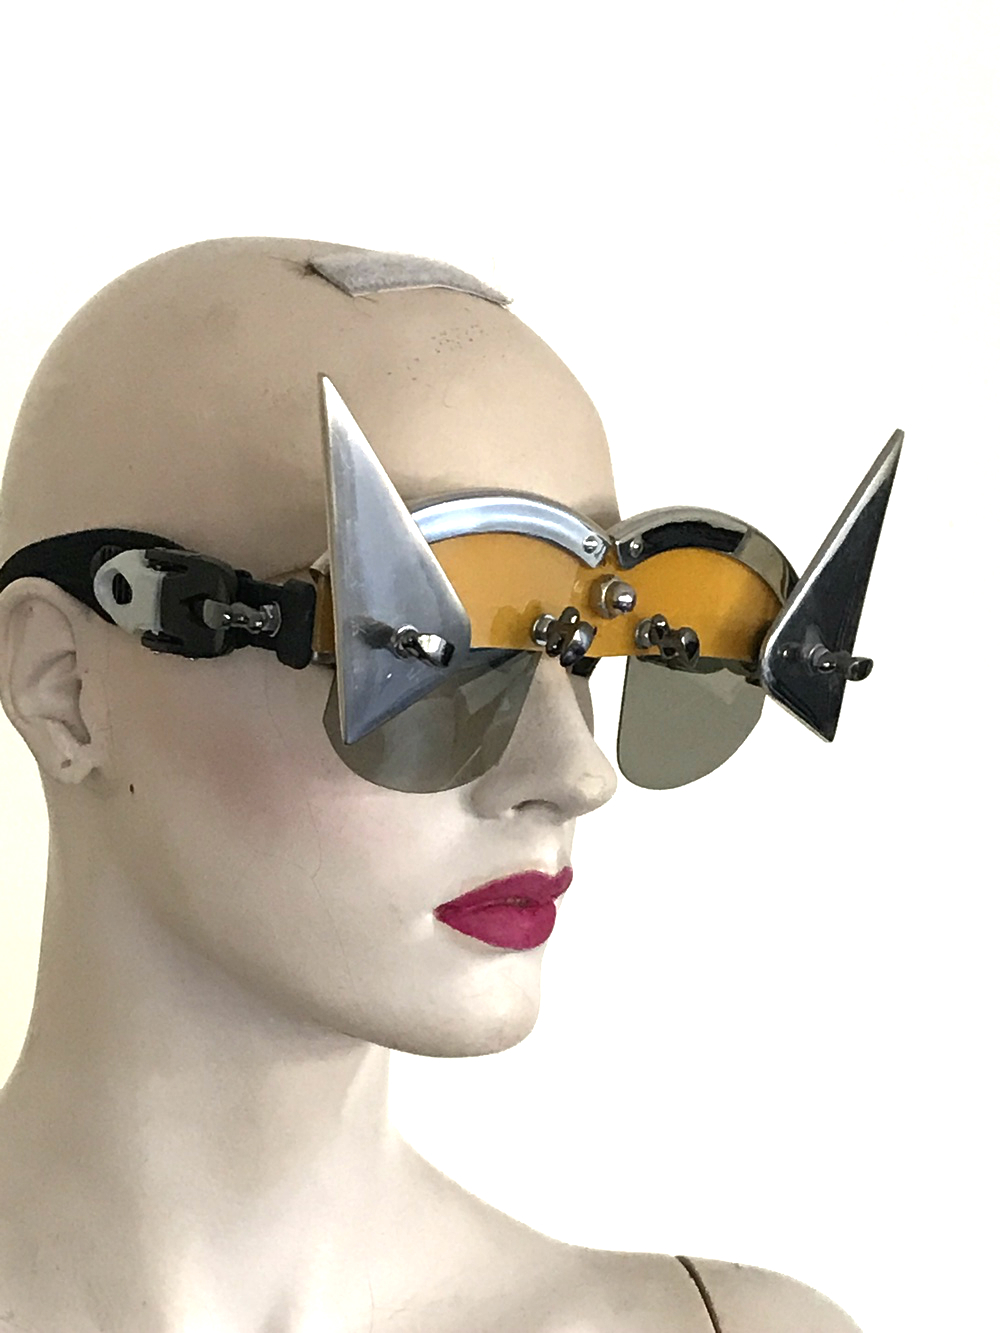 unususal eyewear